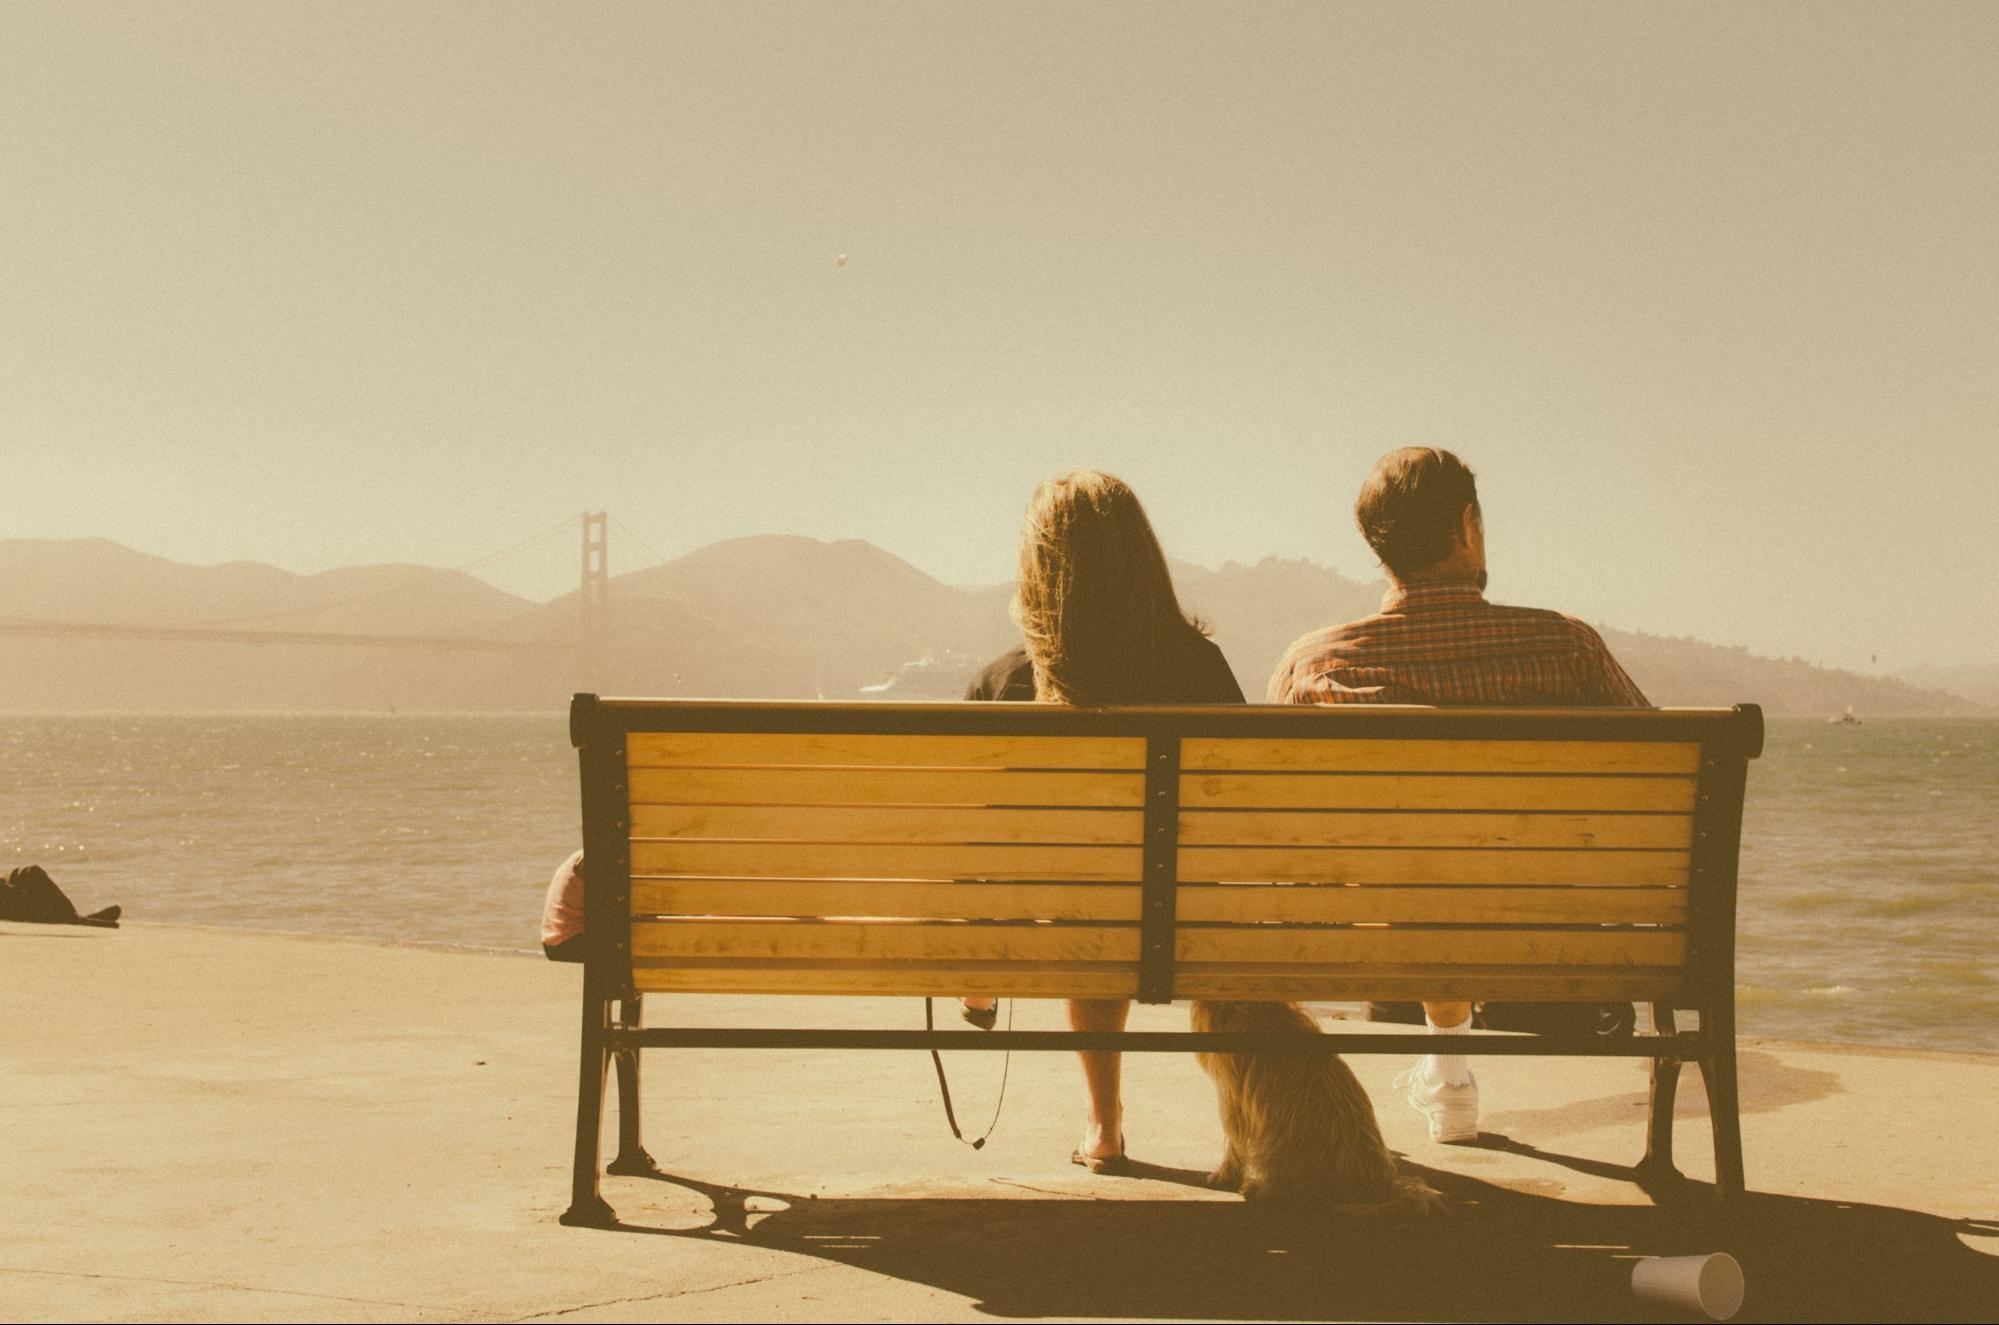 Now we just on park benches and stare into the distance